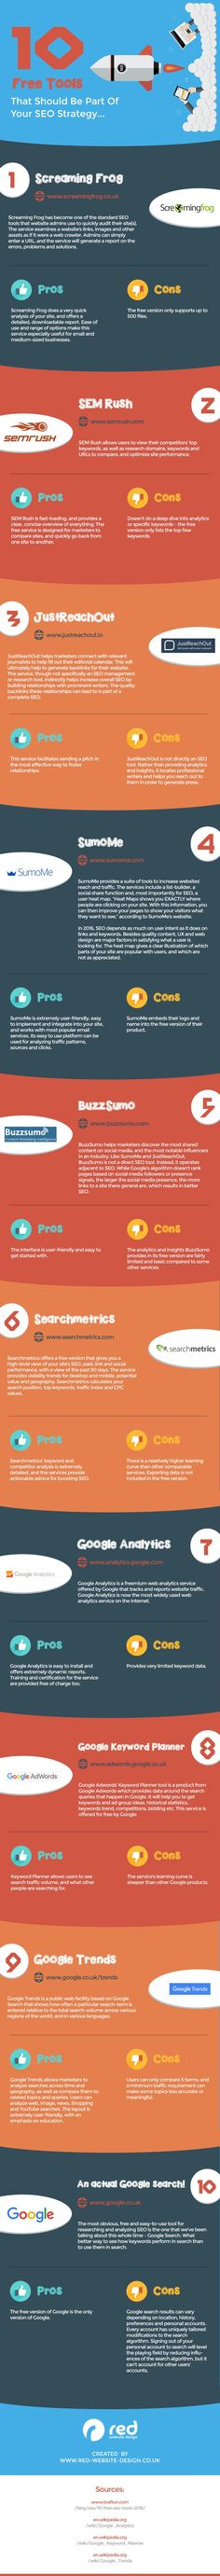 10 free tools that should be part of your digtal marketing strategy infographi - SEO Website Analysis - Plan for your SEO and track your keywords rank. - 10 free tools that should be part of your digtal marketing strategy infographic